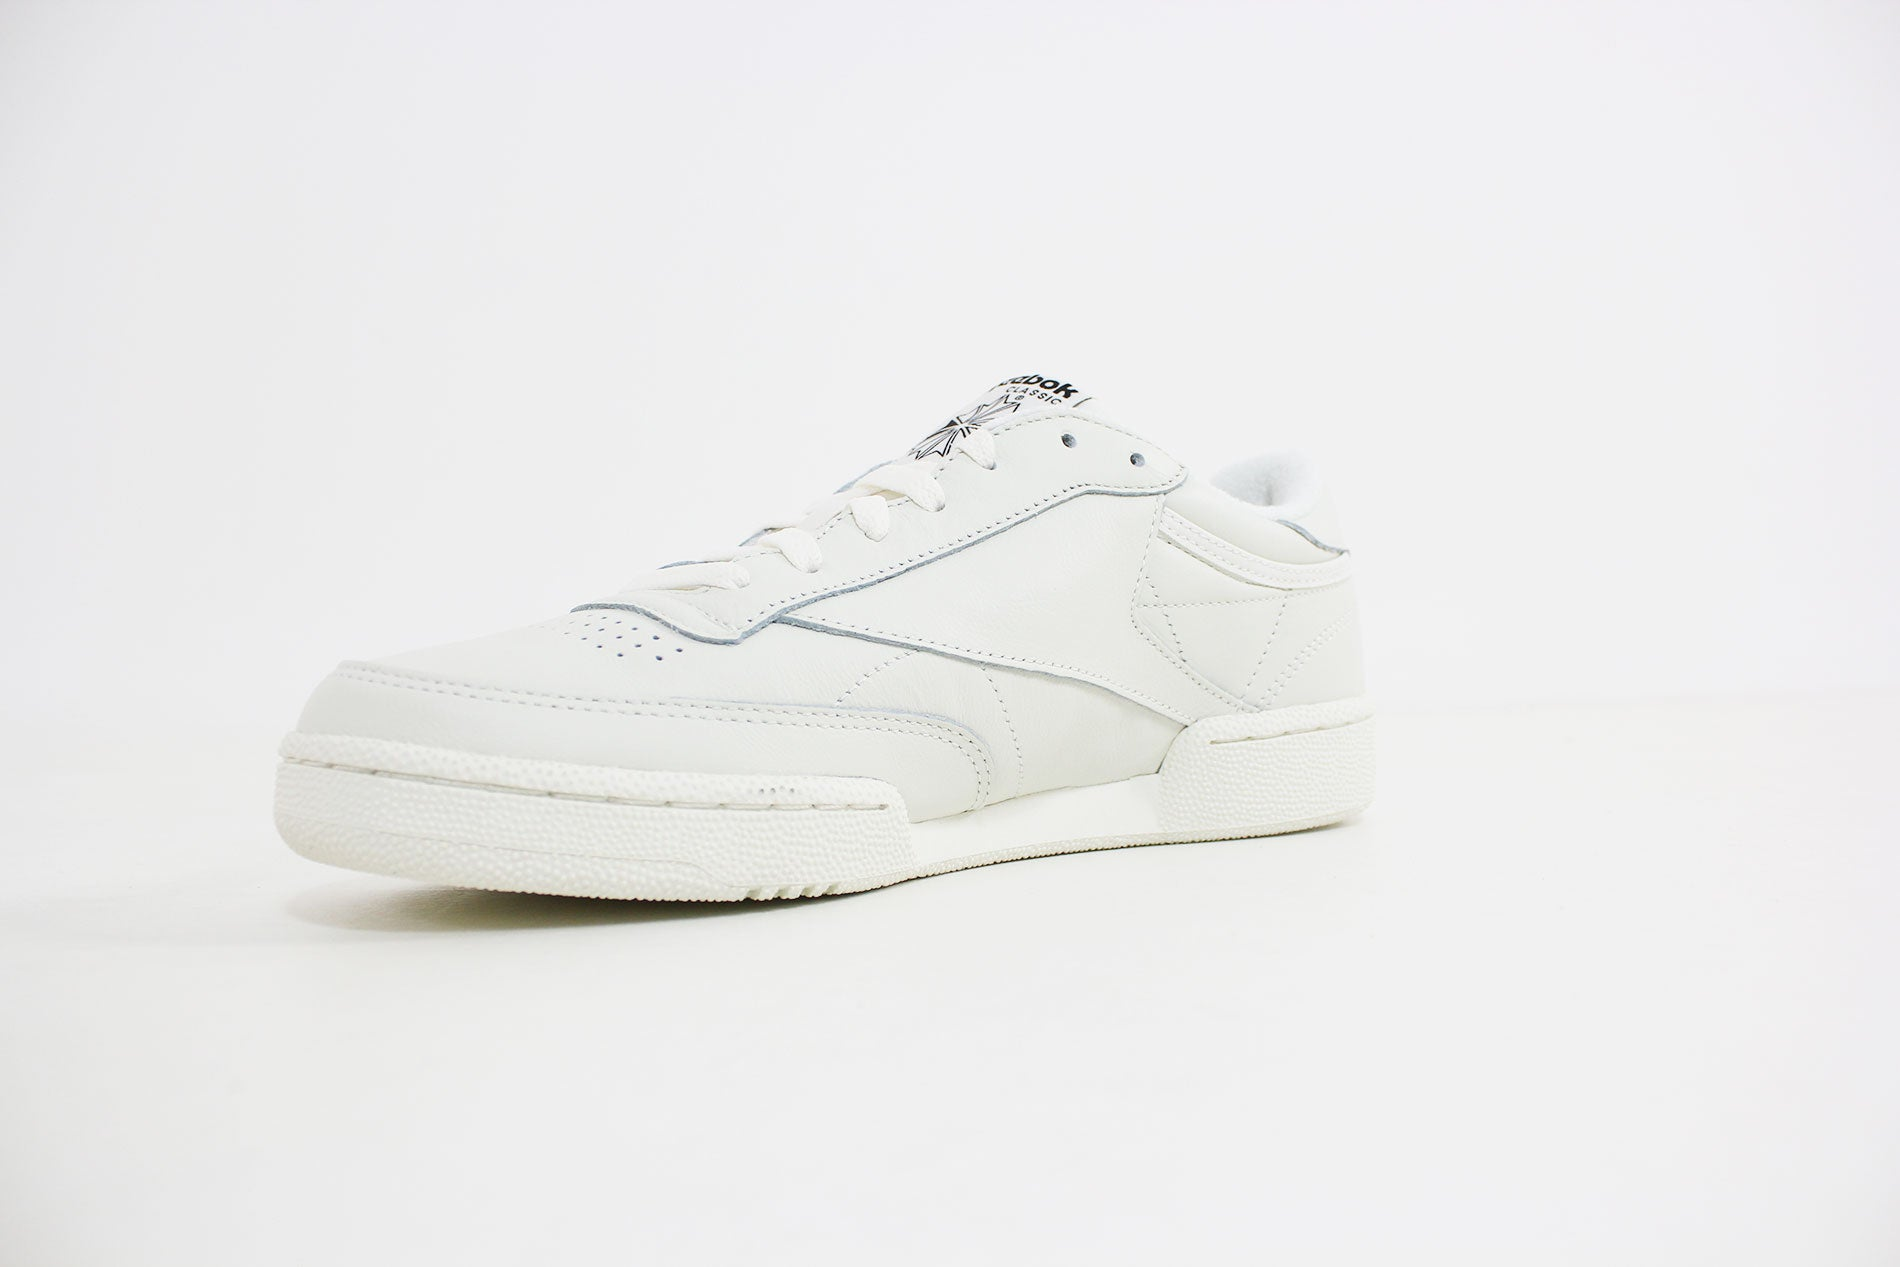 Reebok - Club C 85 (Chalk/ Black) CN3924